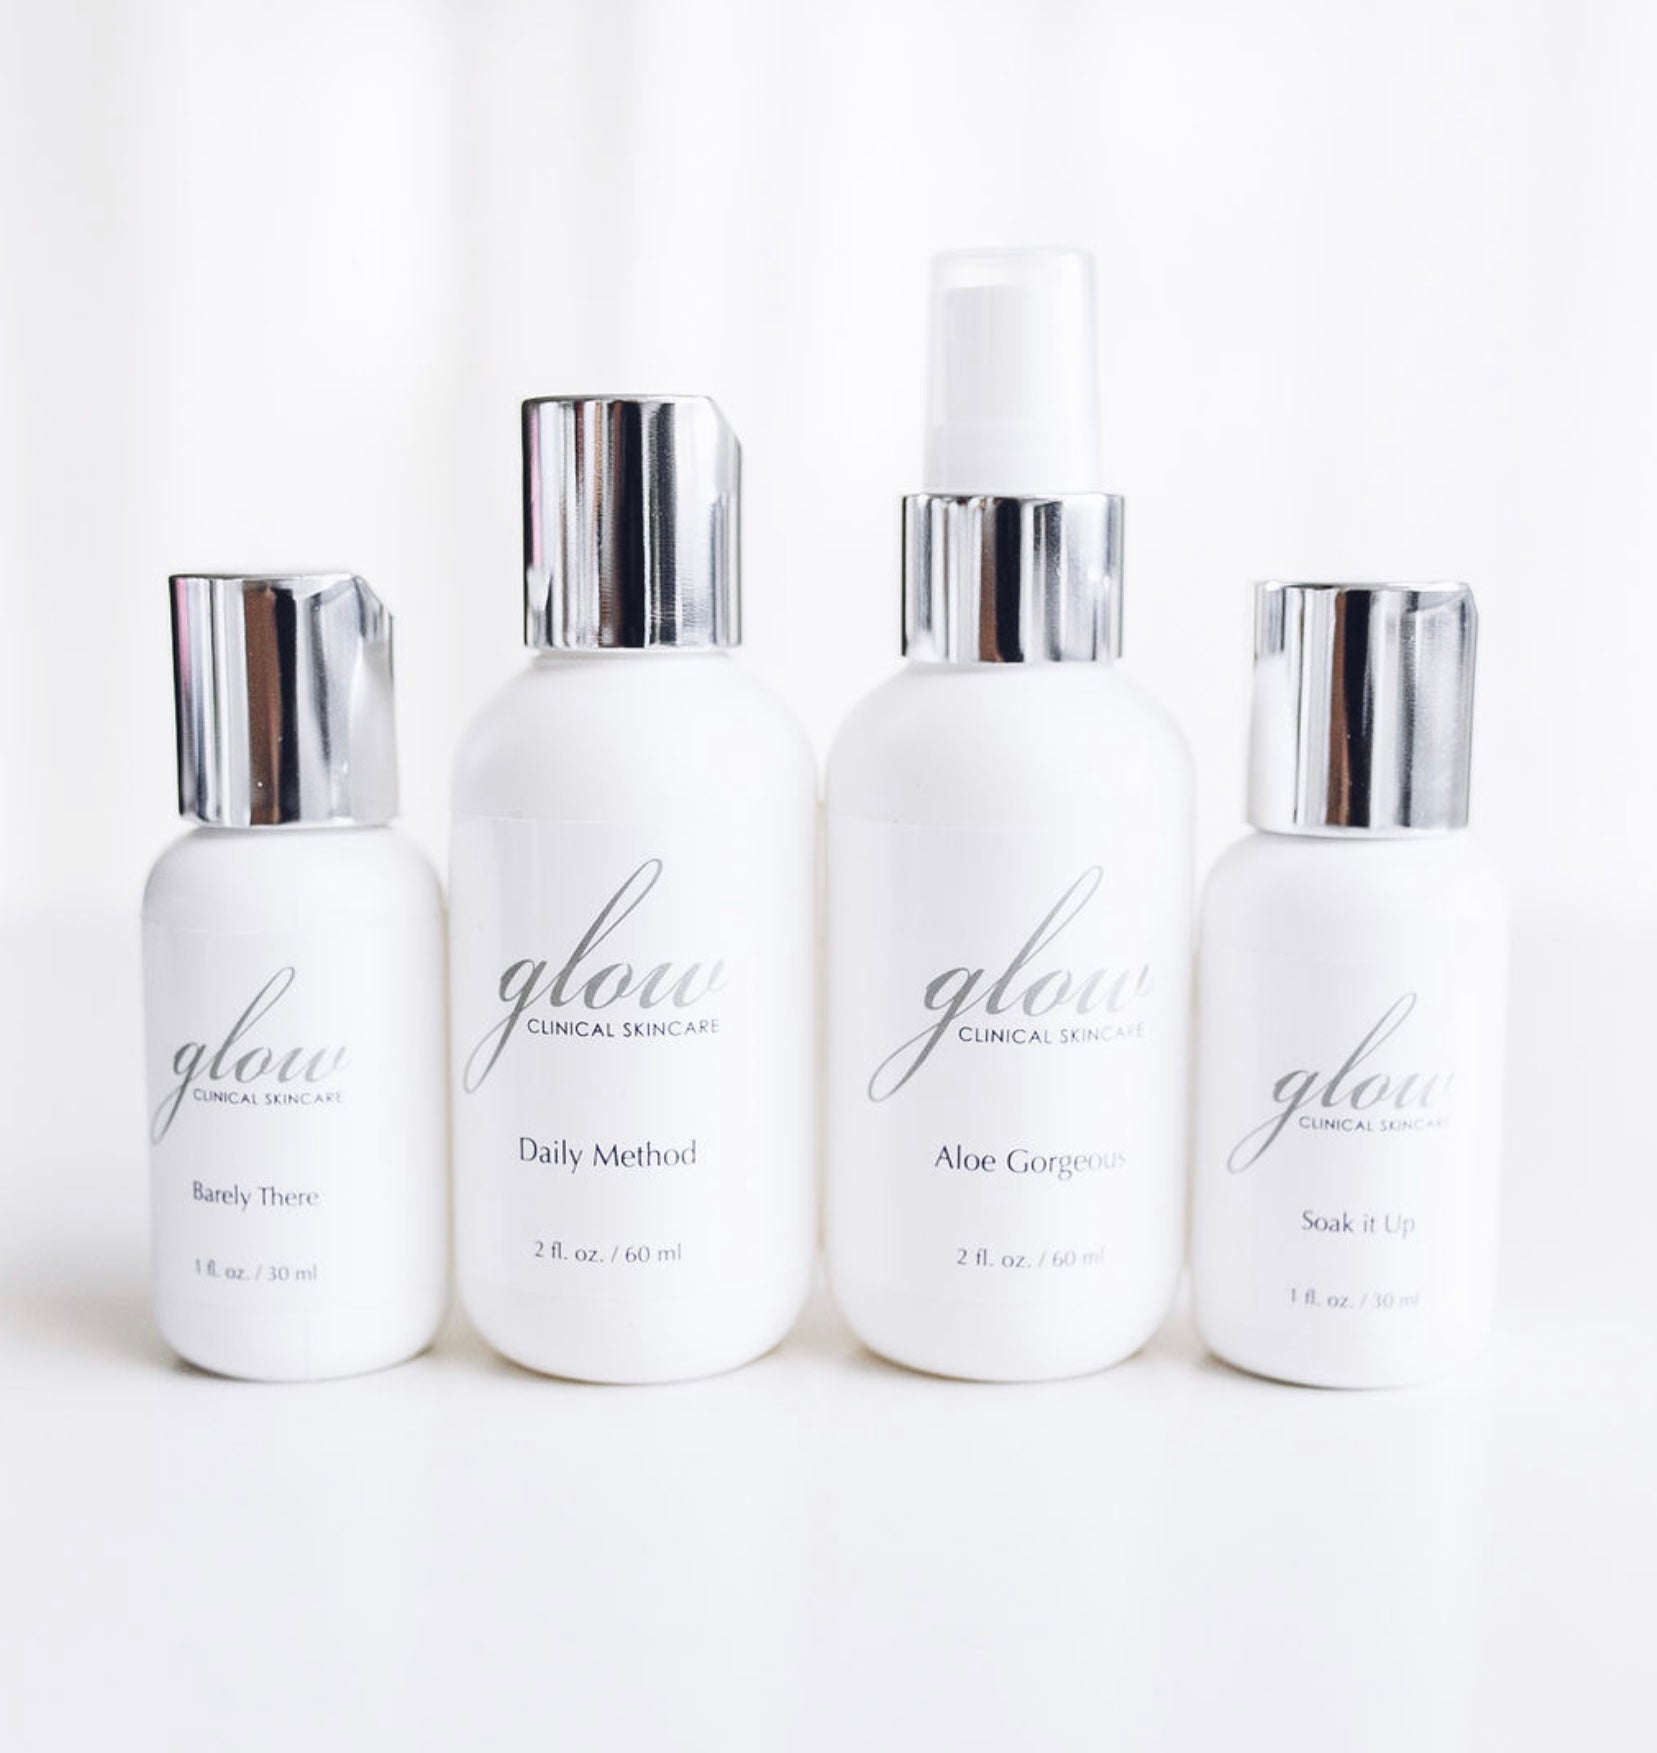 Travel size Glow Clinical Skincare.